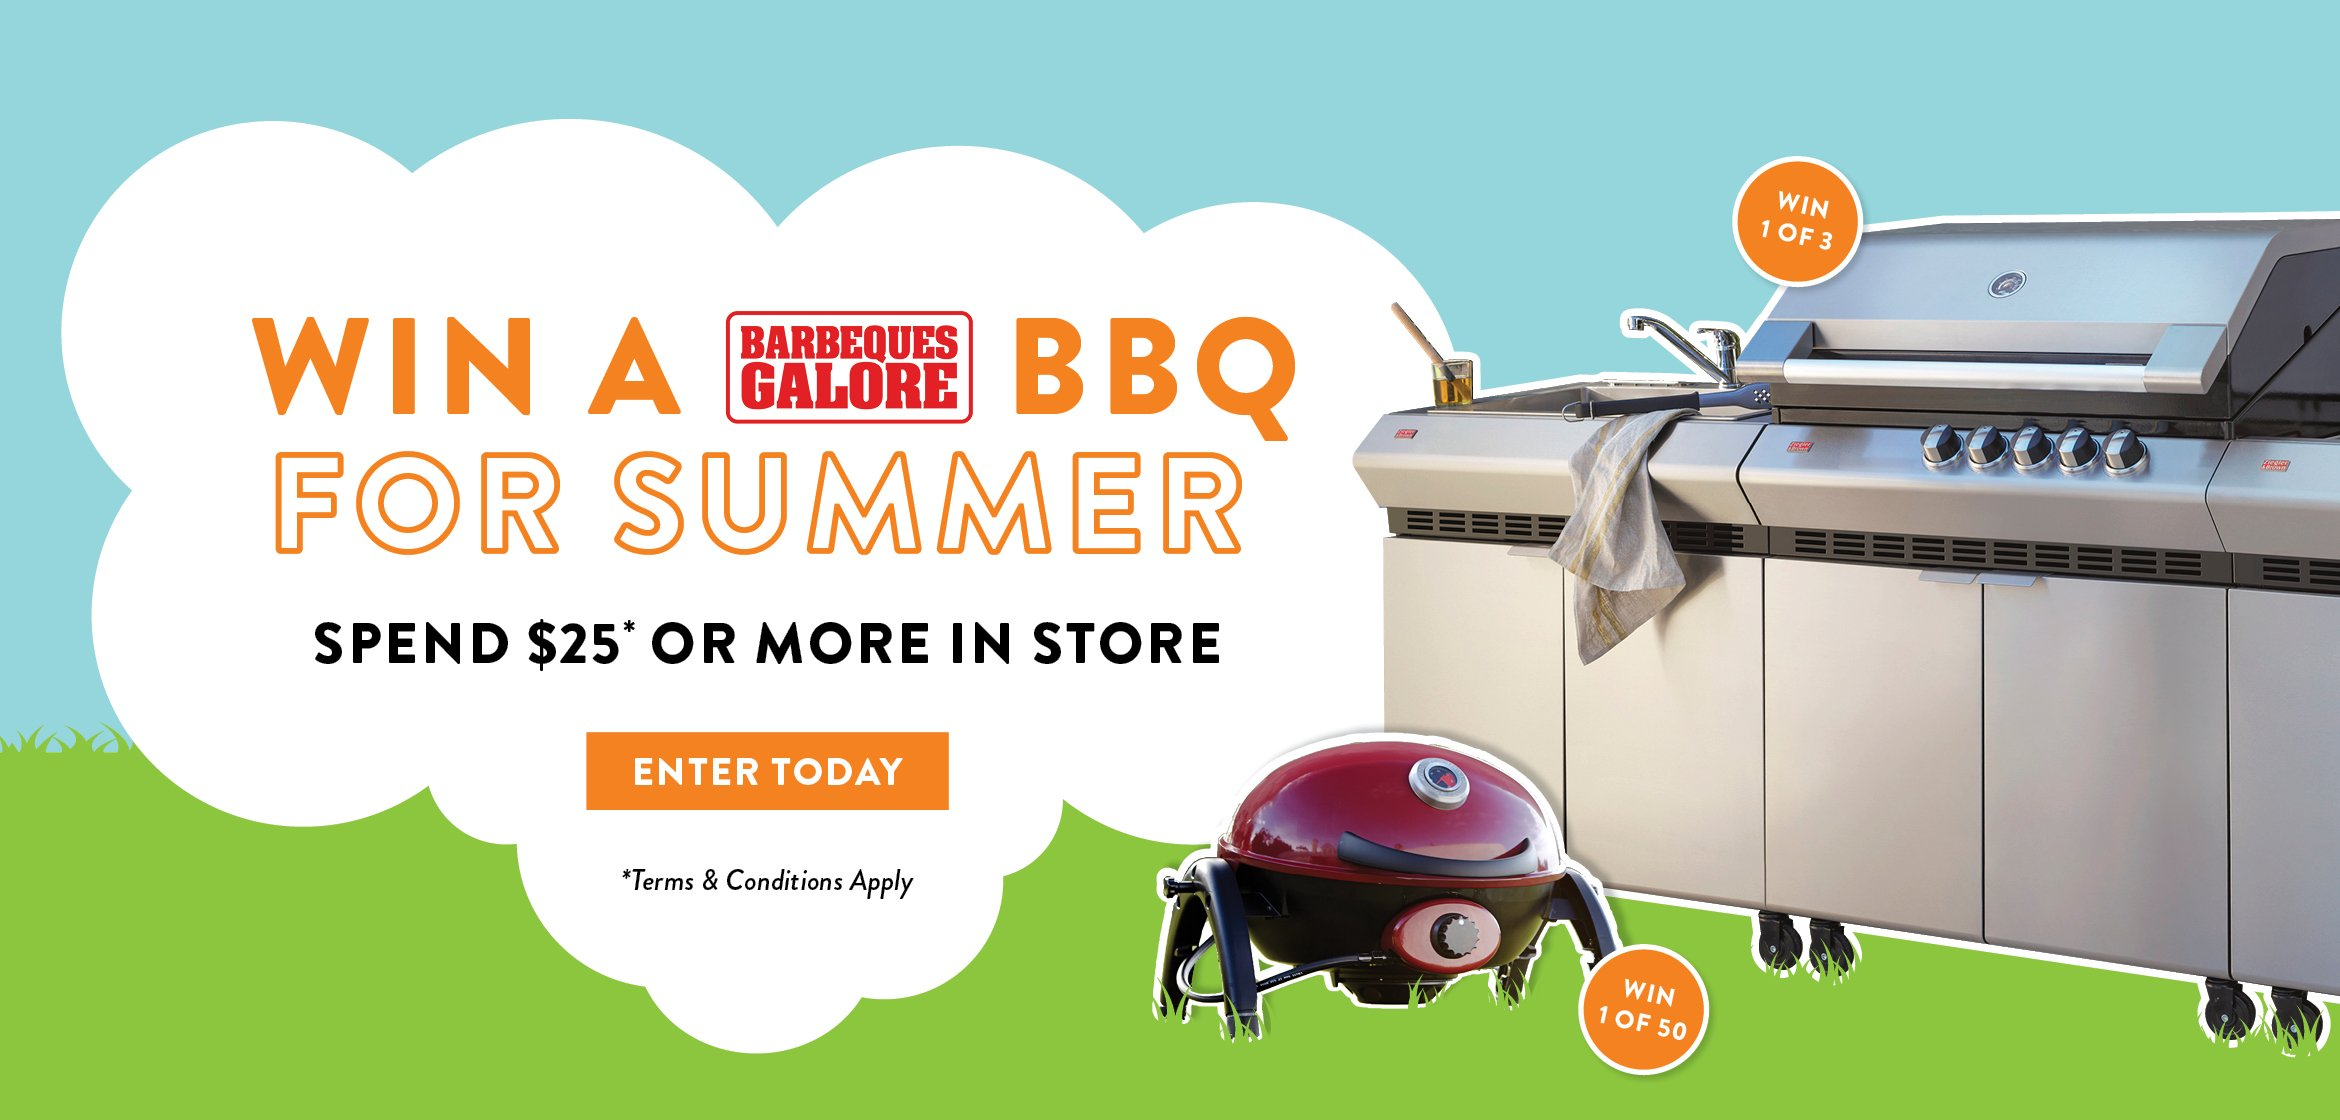 WIN A BBQ FOR SUMMER